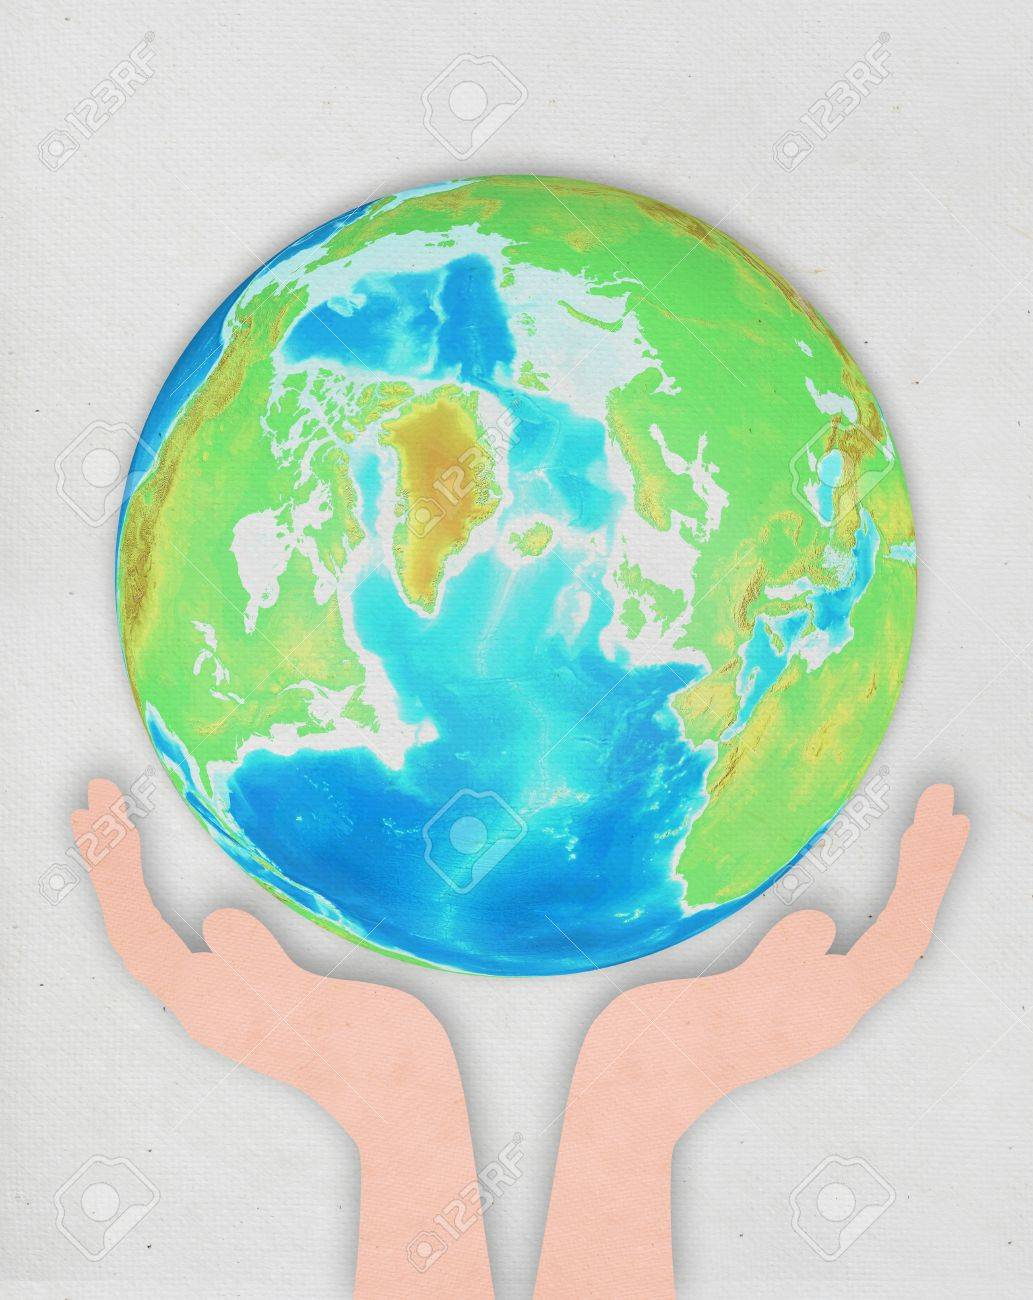 hand holding globe ,paper art design ,save the earth concept Stock Photo - 12812741